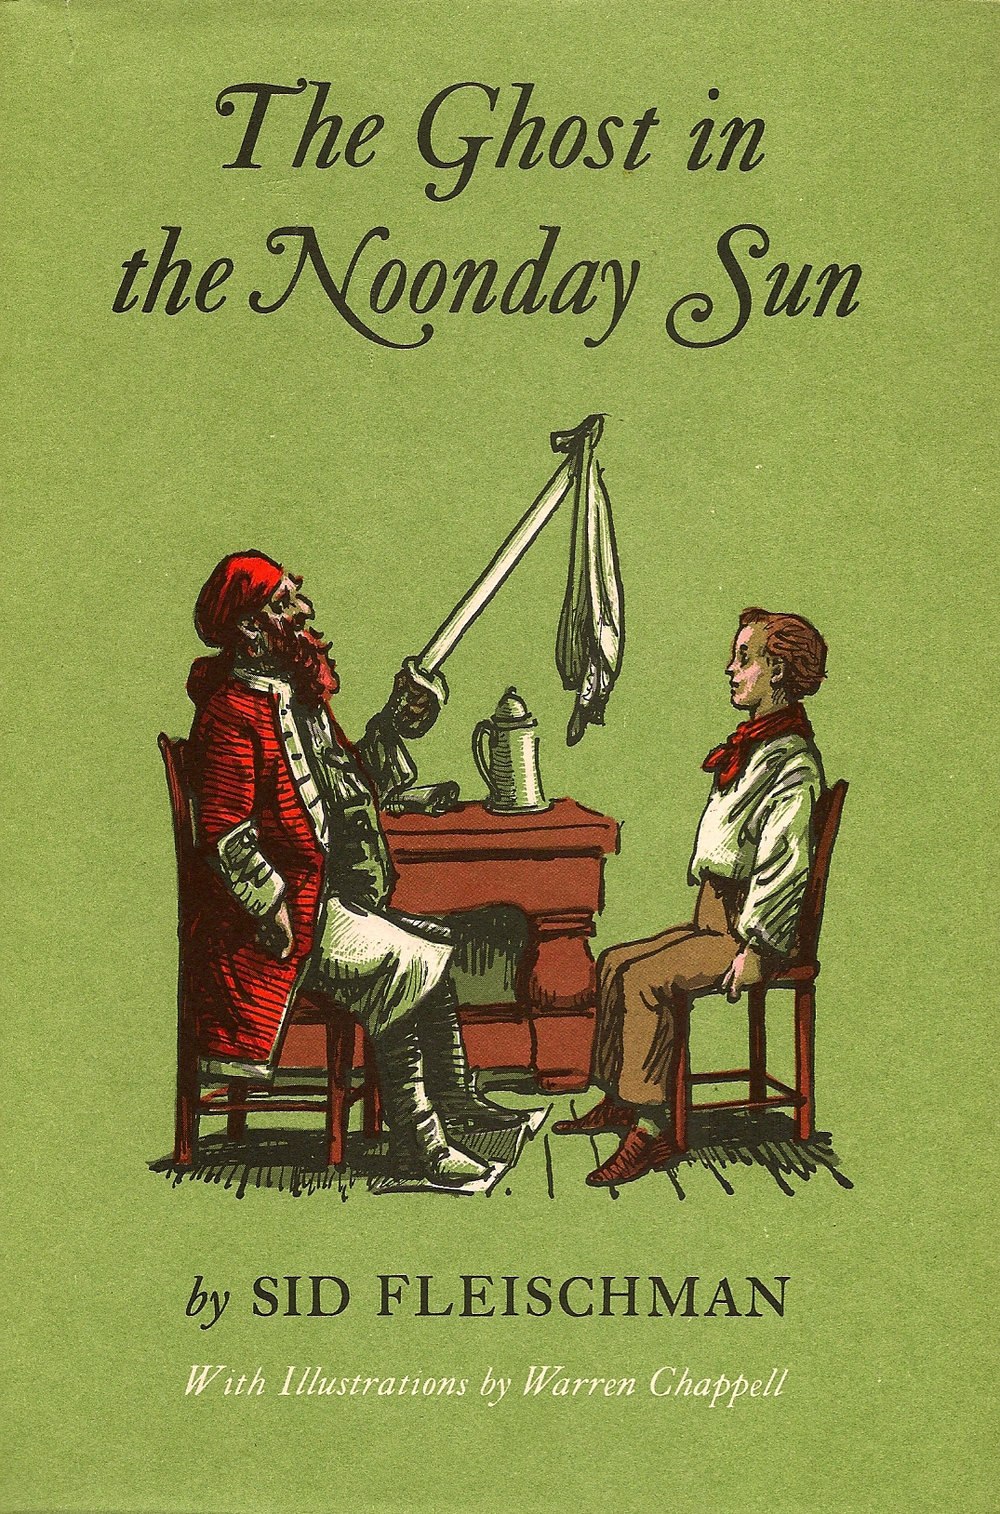 The Ghost in the Noonday Sun - Illustrated by Peter Sis This swashbuckling tale of pirates, ghosts and trasure begins with the blast: